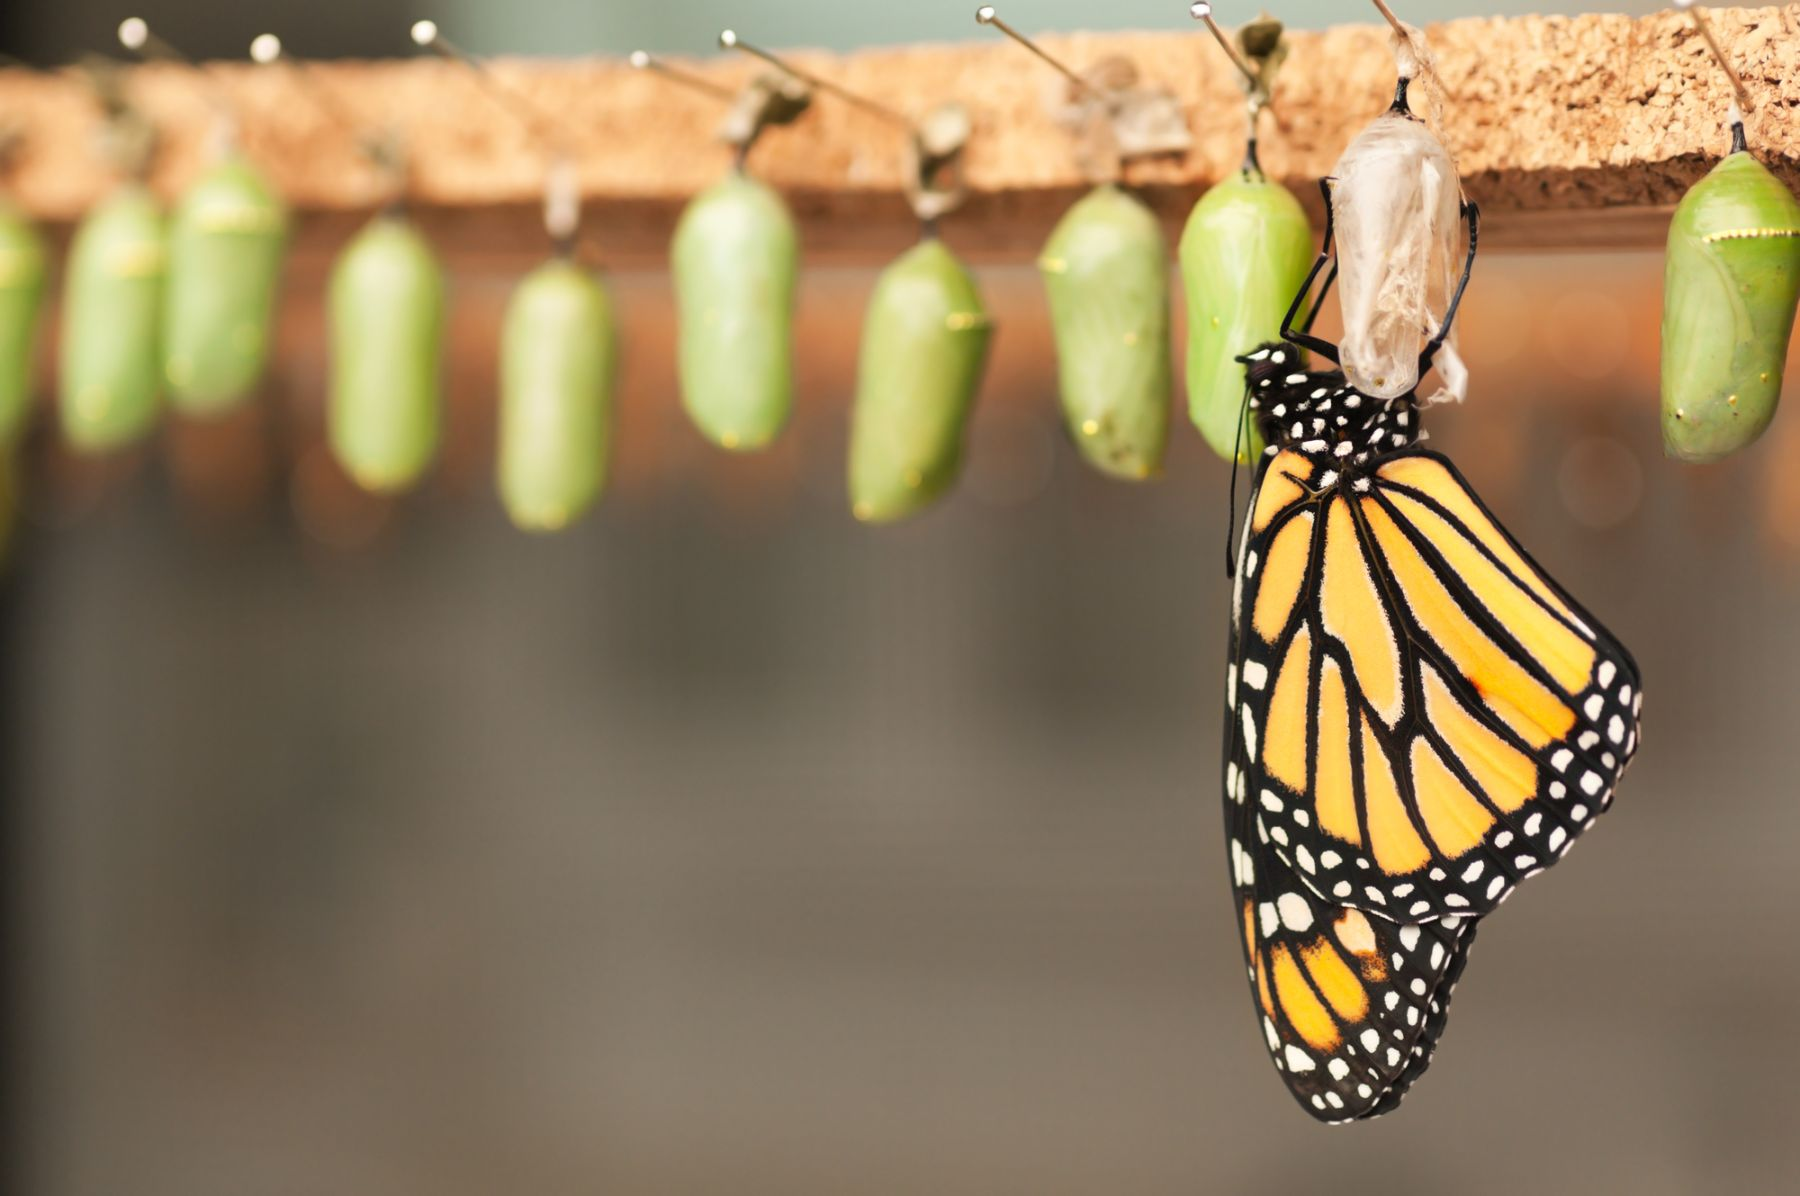 Butterfly emerging form cocoon.